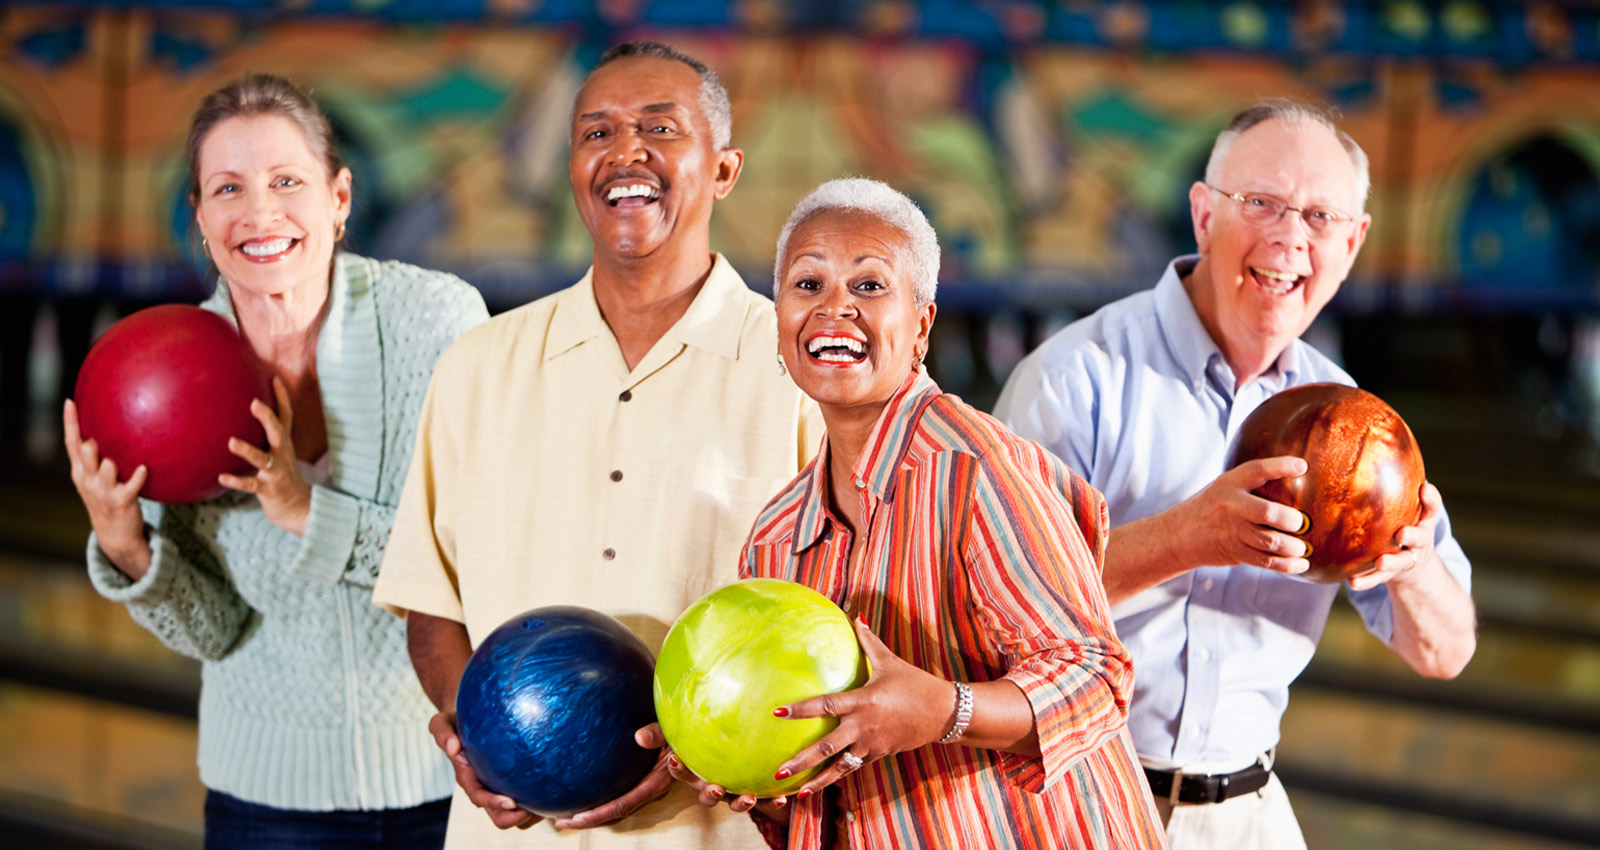 Older Couples Bowling at Princess Lanes in Caste Village